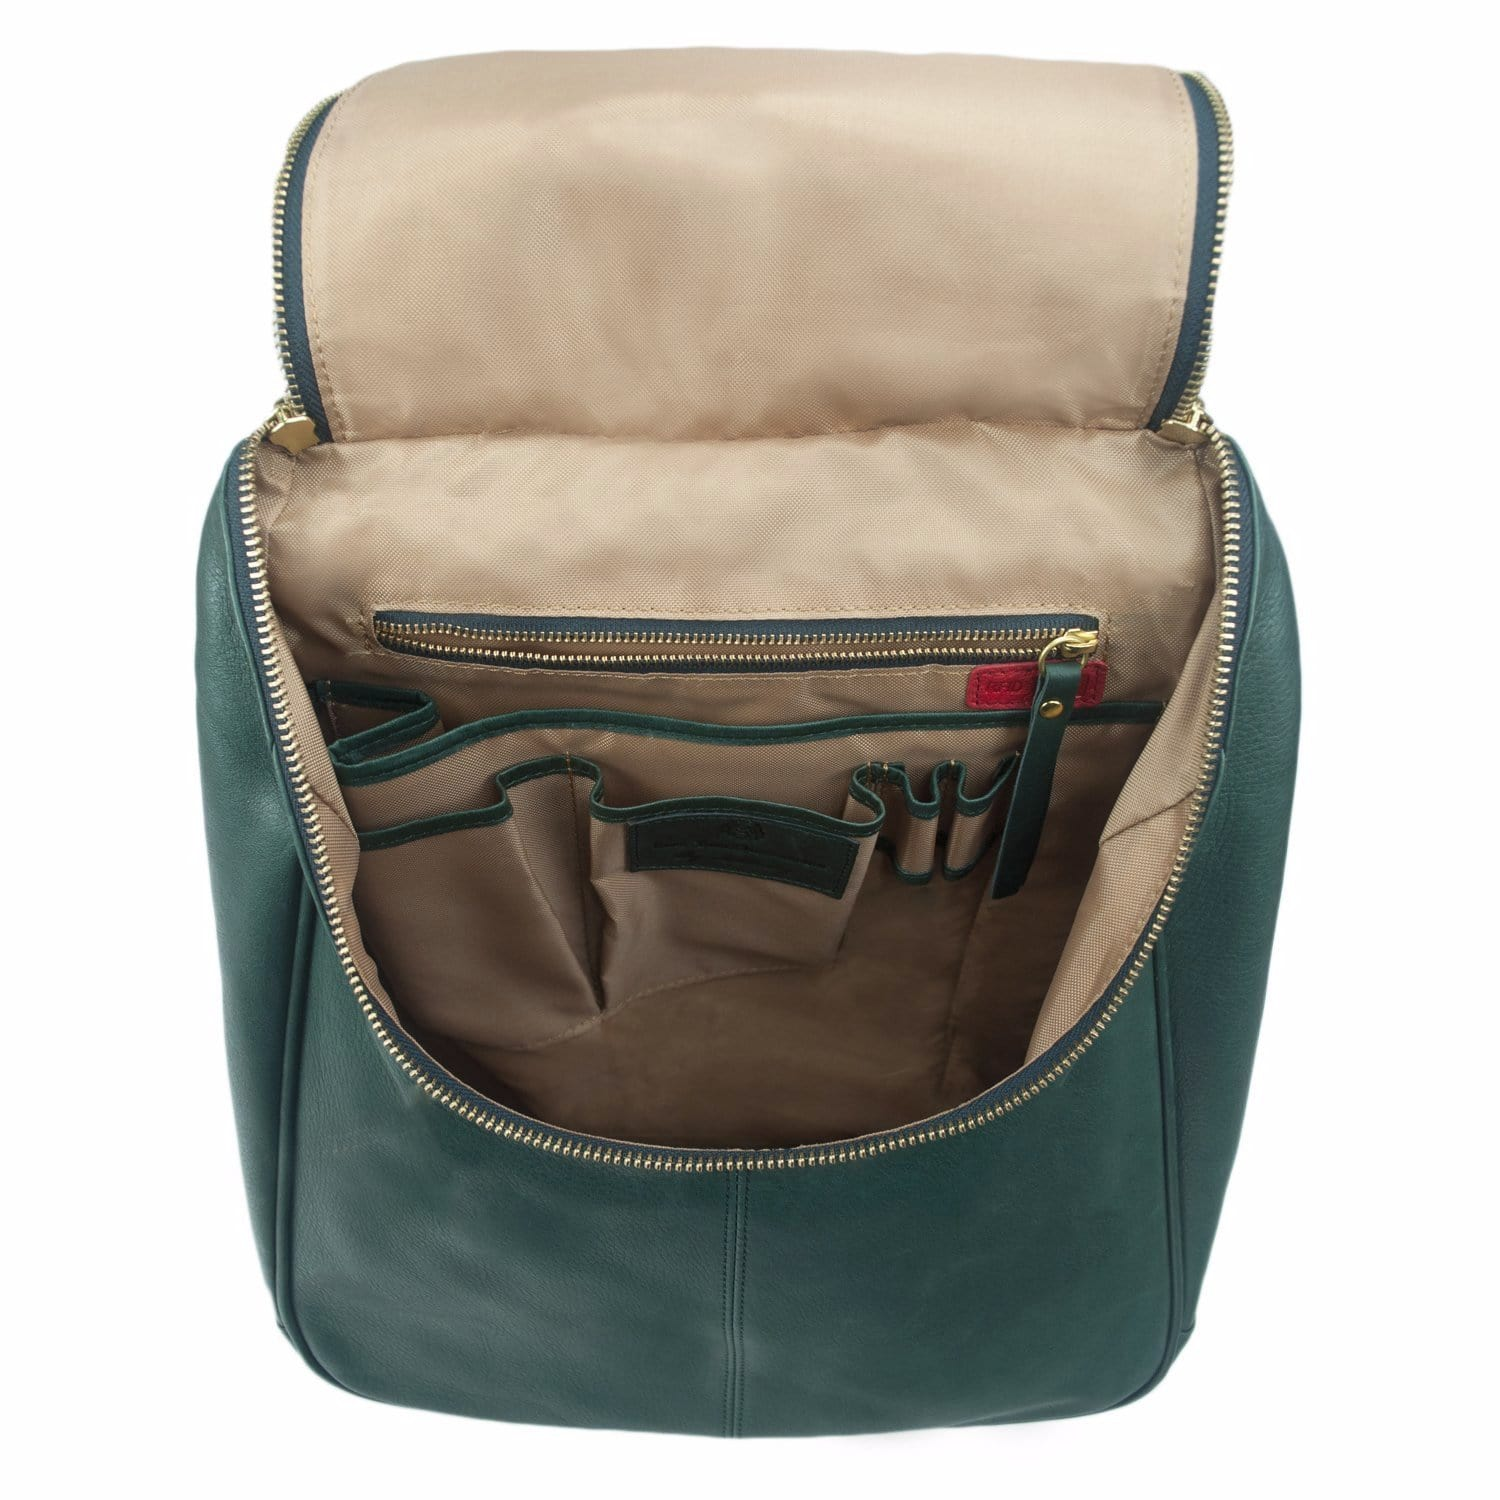 Osgoode Marley Nora Backpack (7034) Petite Roomy Everyday Bag